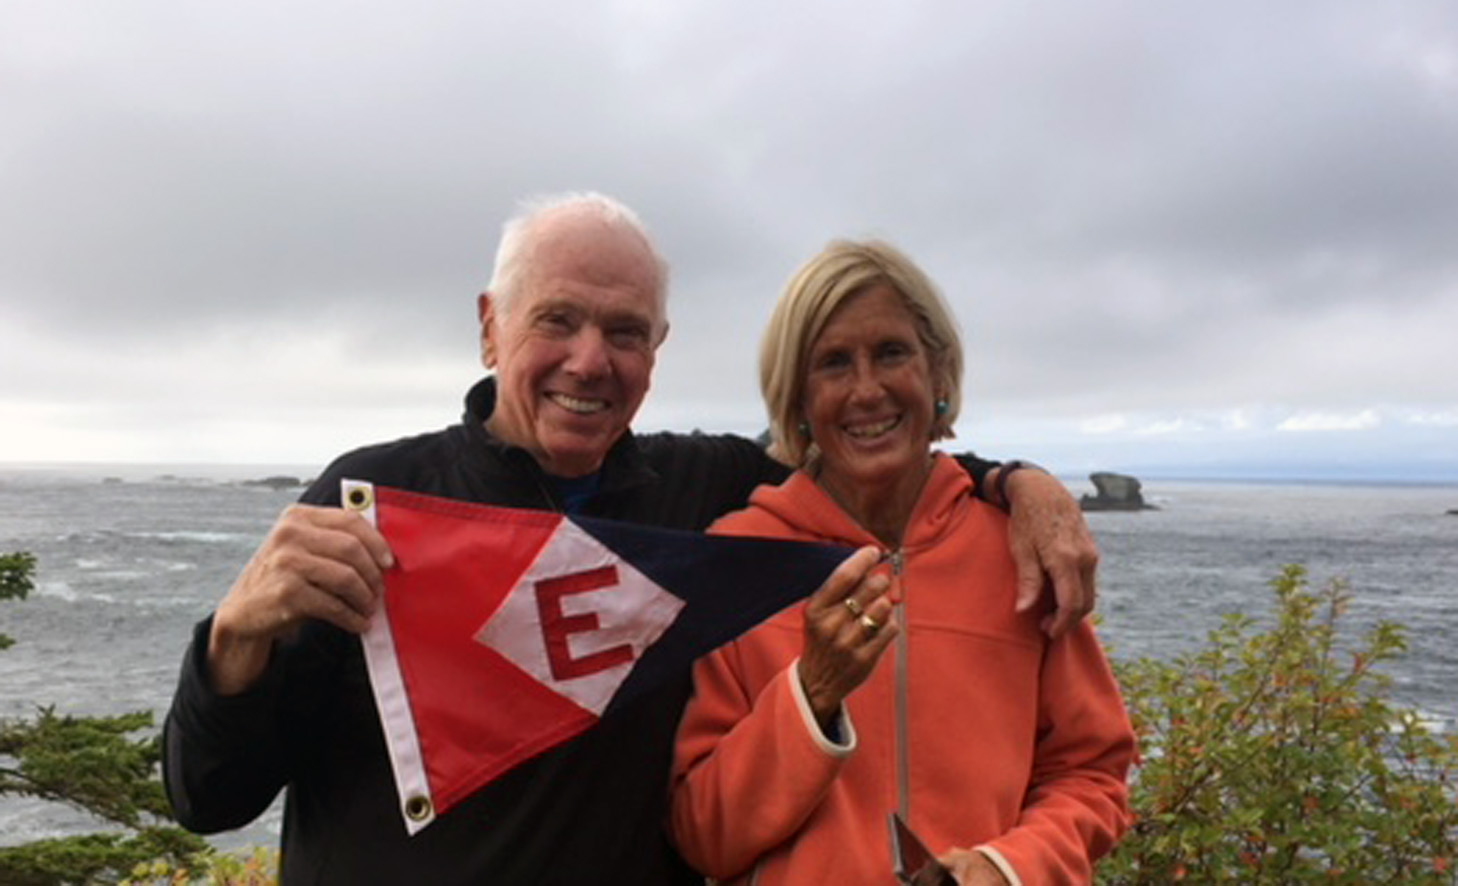 Bill and Nadine Powell show their pride at Cape Flattery, WA—the northwesternmost point of land in the continental United States